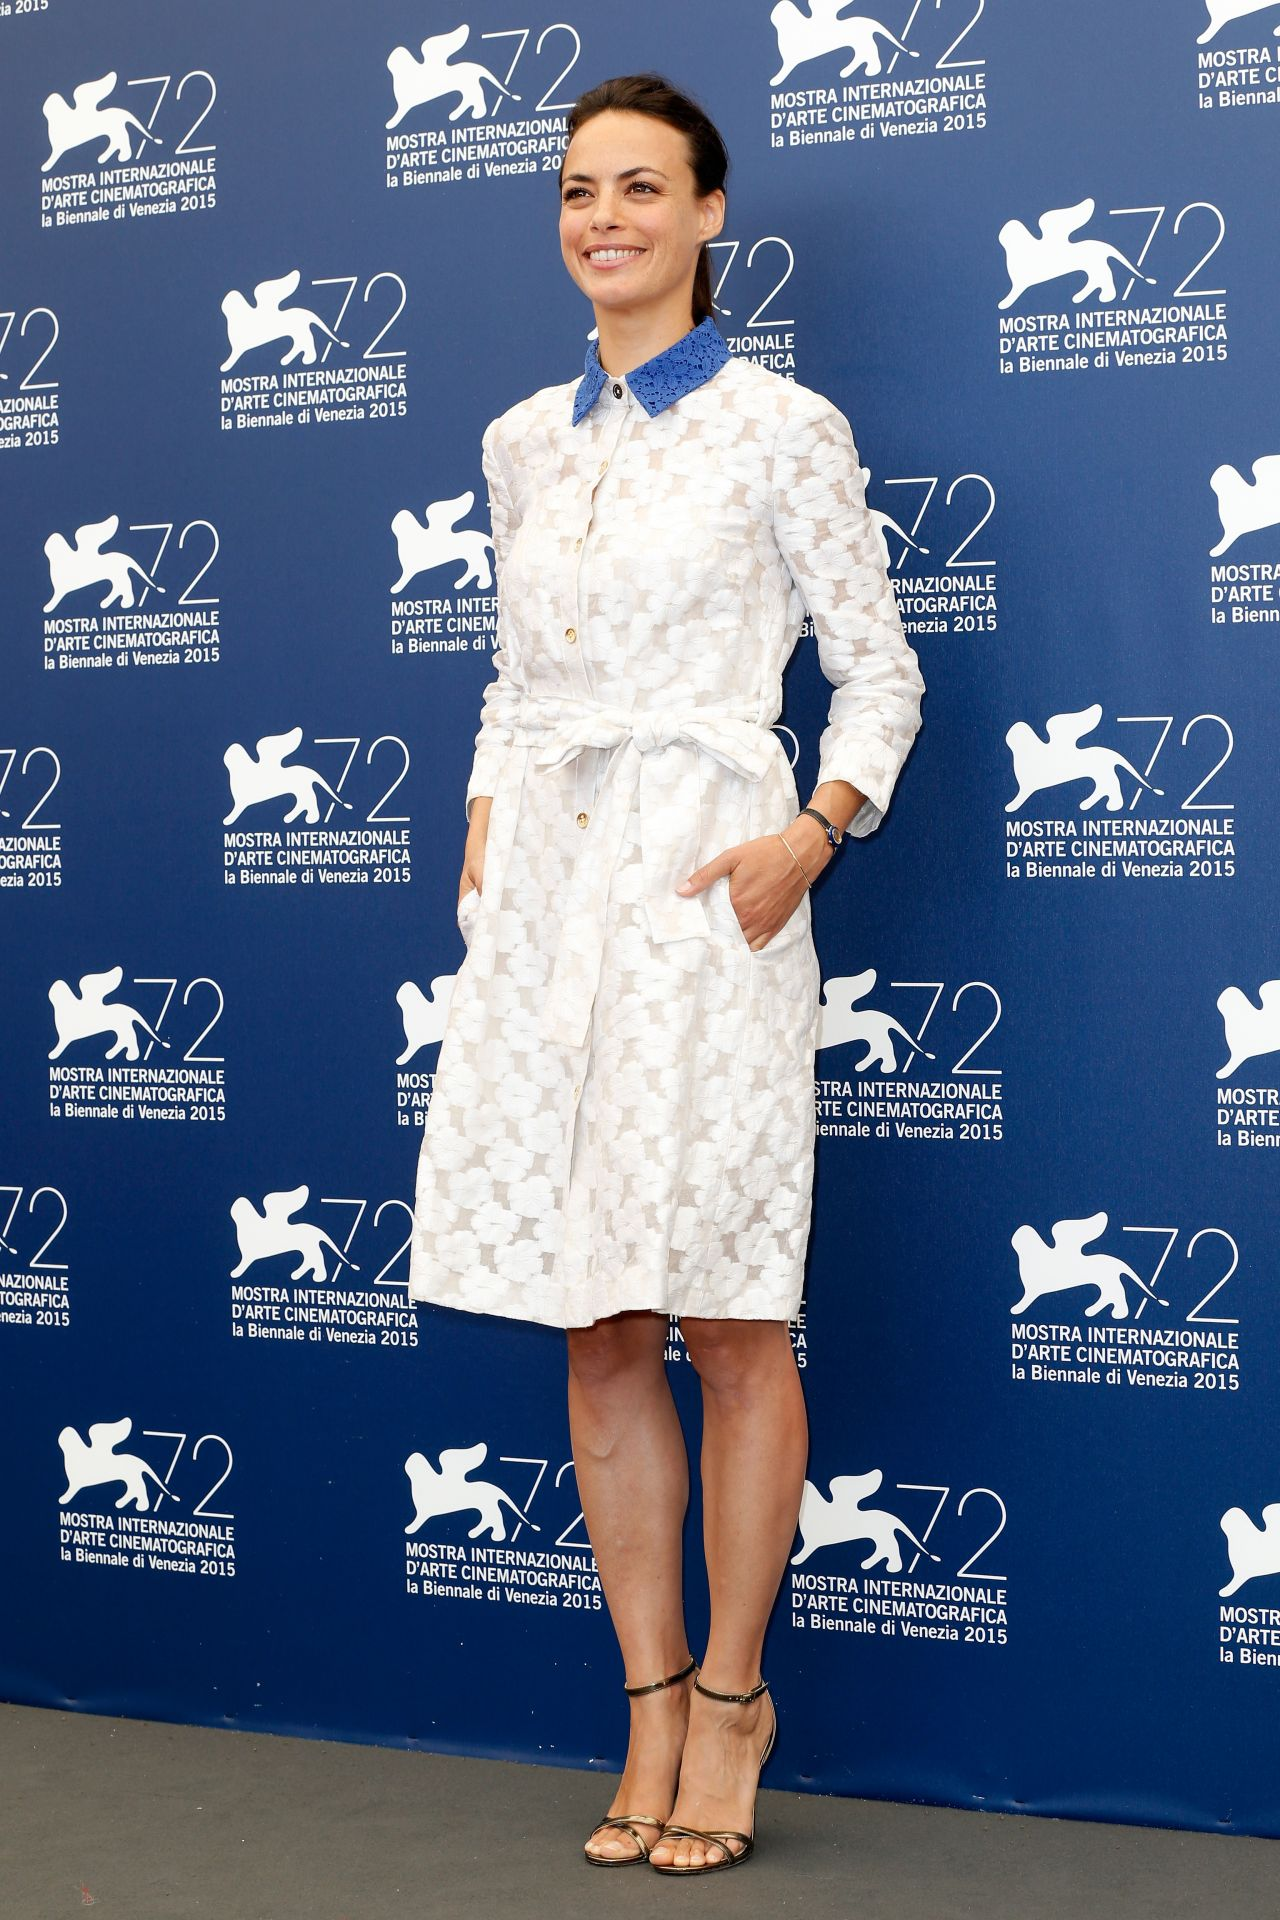 berenice-bejo-the-childhood-of-a-leader-photocall-72nd-venice-film-festival_3